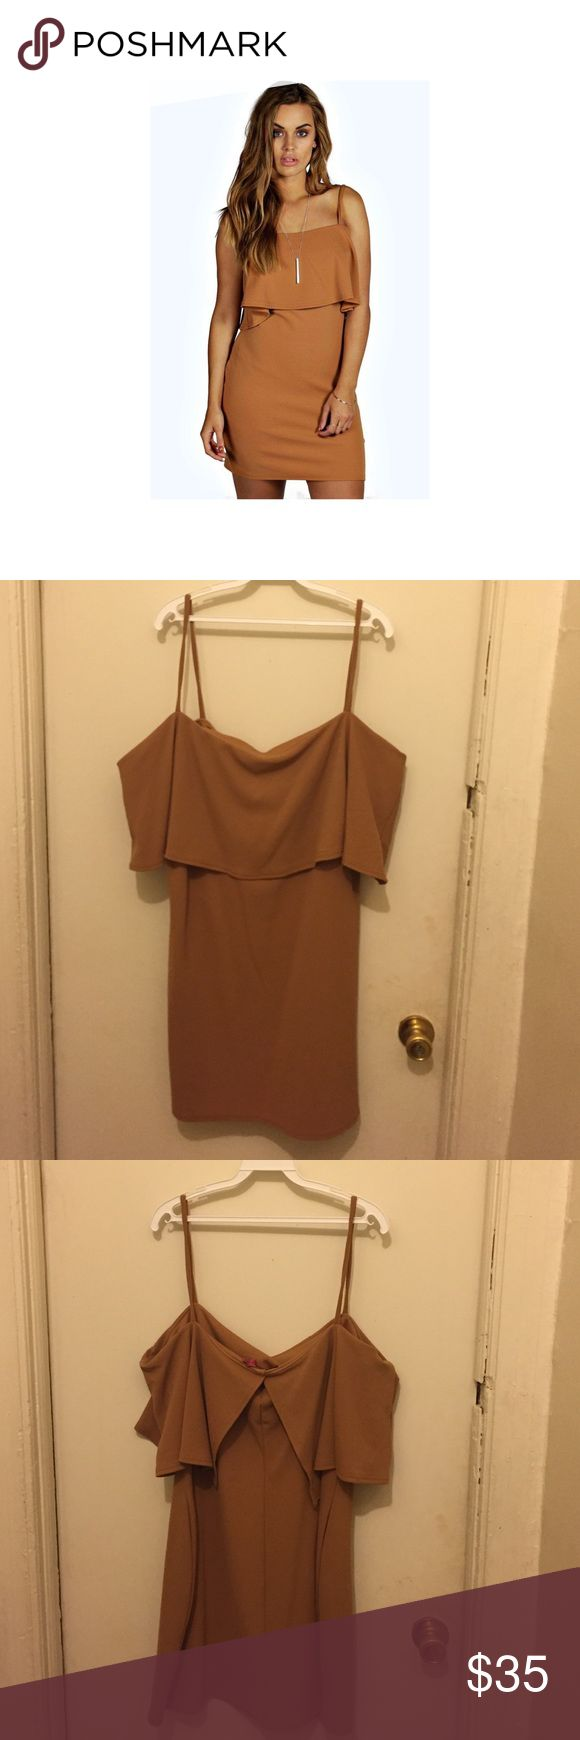 Diana Double Layer Bodycon Dress NWT. Camel double layer Bodycon dress. Size 20 bought a year ago for my birthday NEVER WORN. Boohoo Plus Dresses Mini